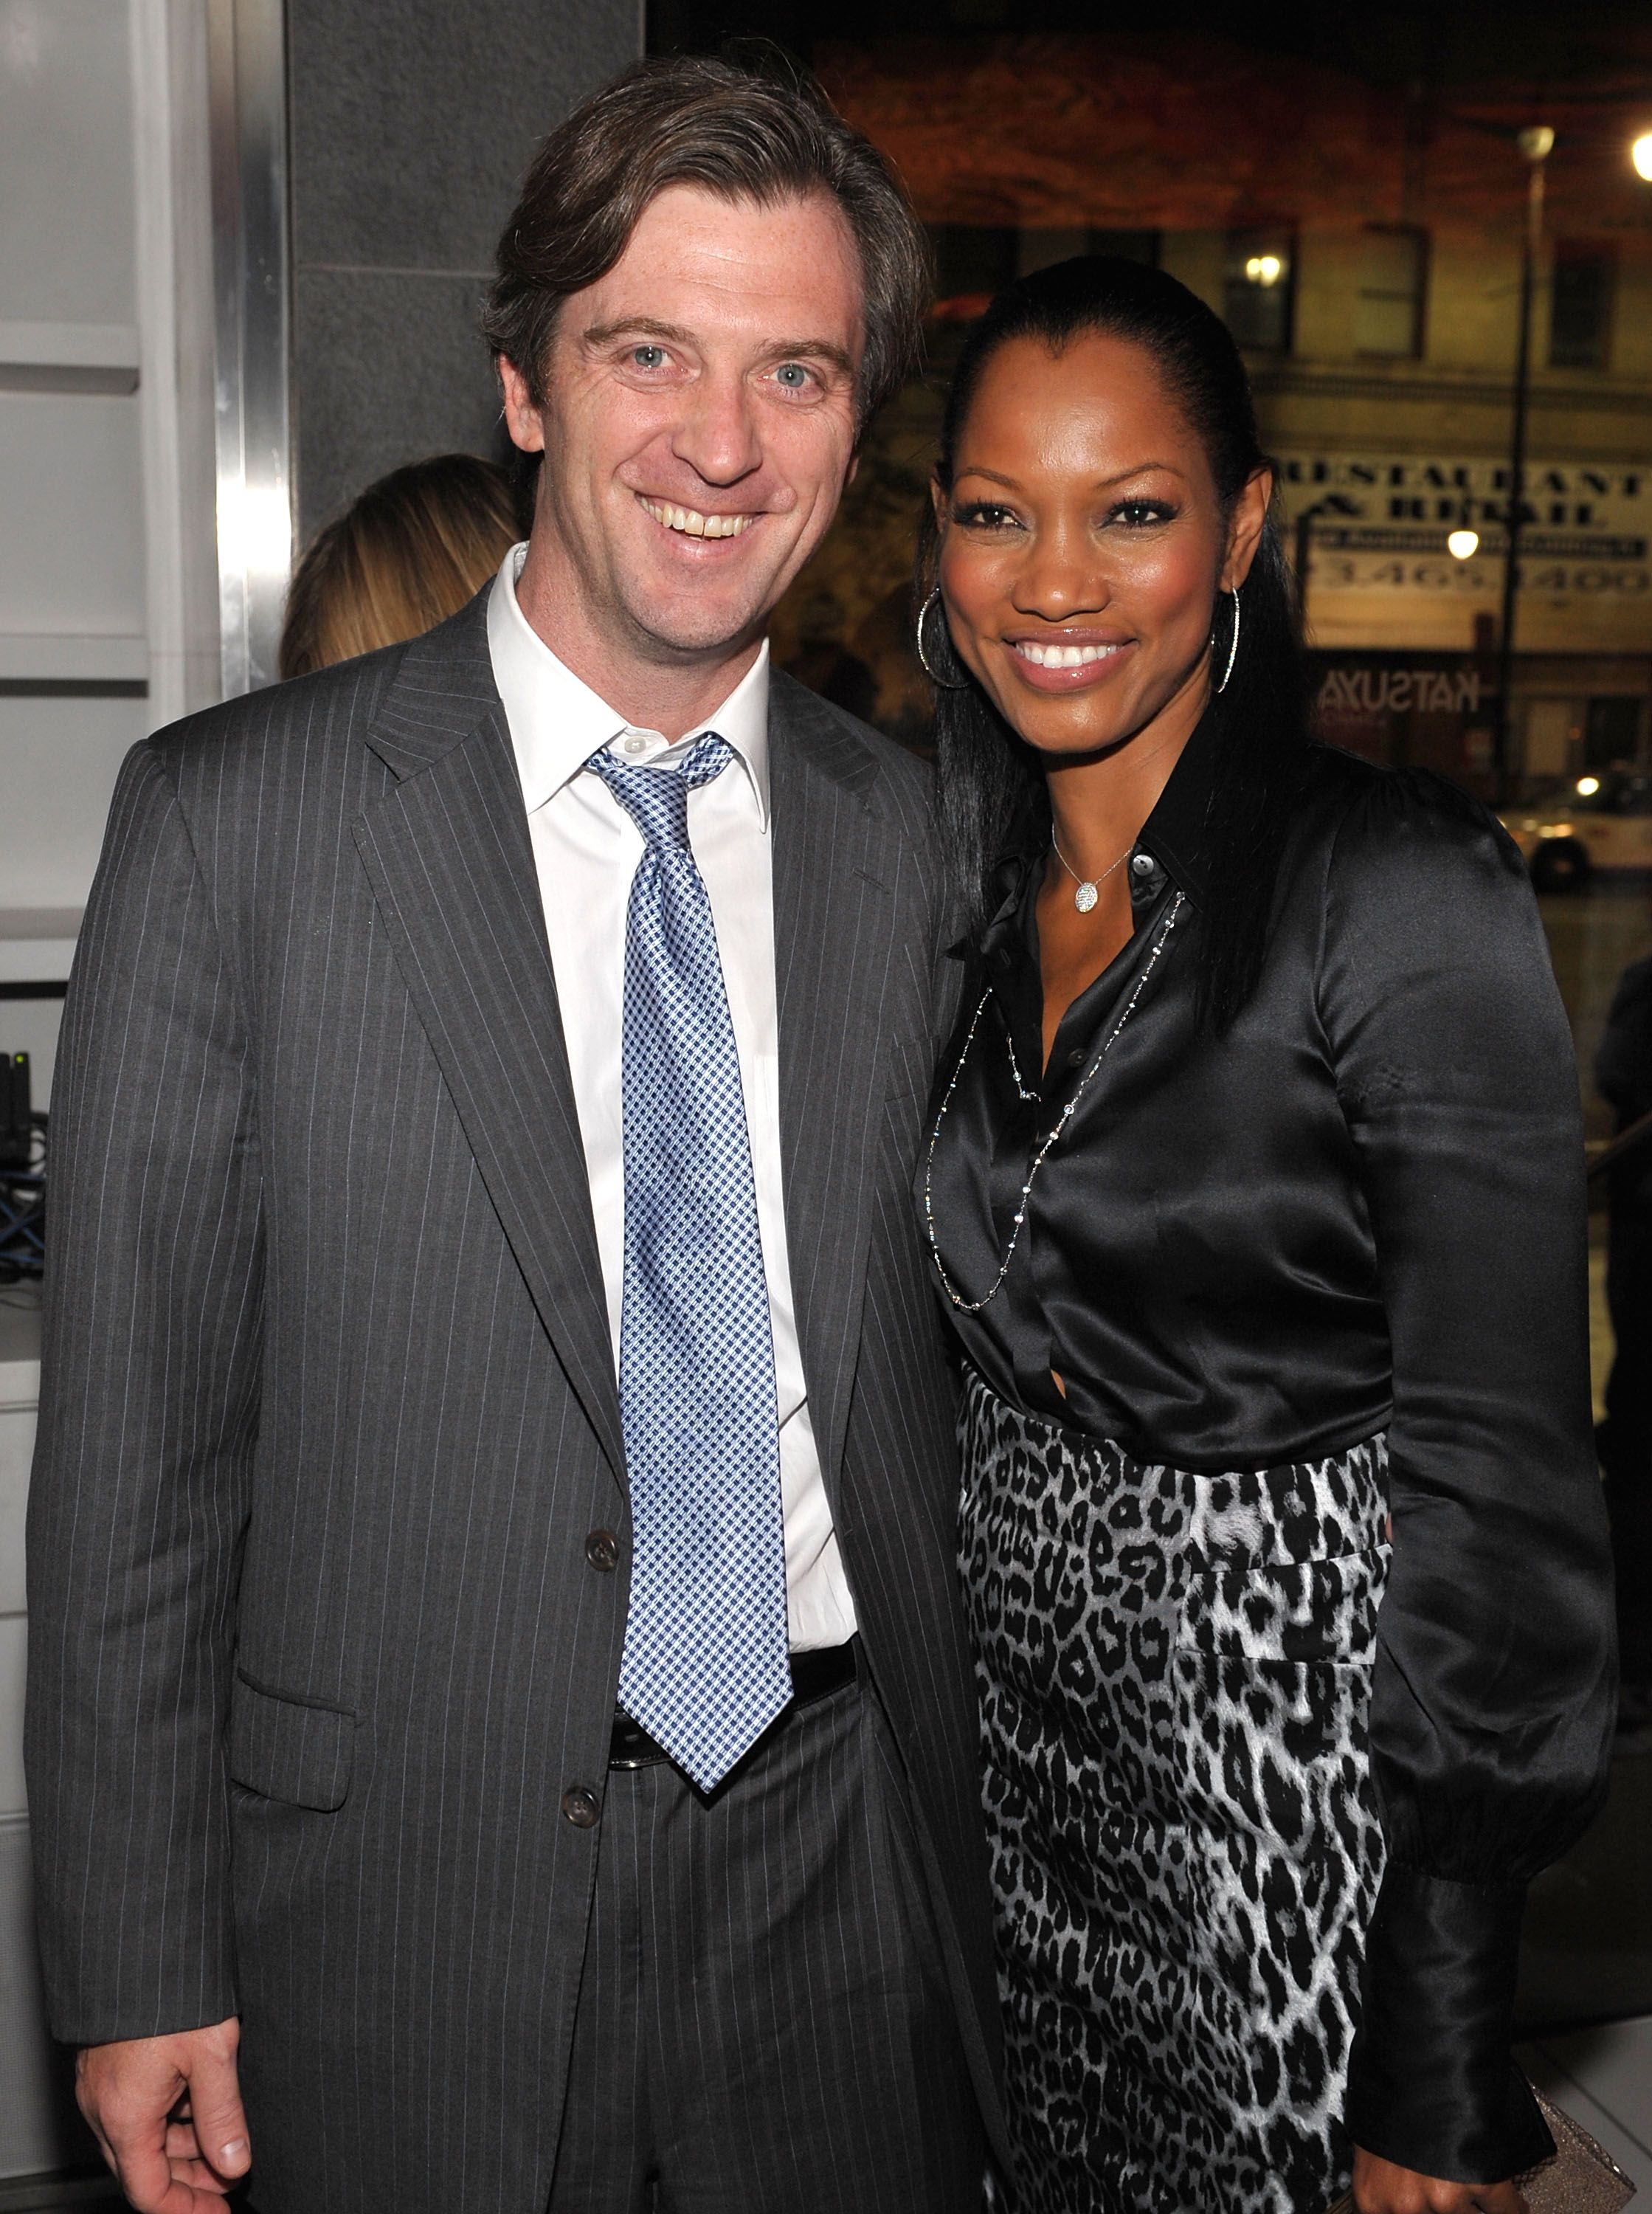 """Garcelle Beauvais and Mike Nilon at the after party for the Los Angeles premiere of """"Spread"""" in 2009 in Hollywood 